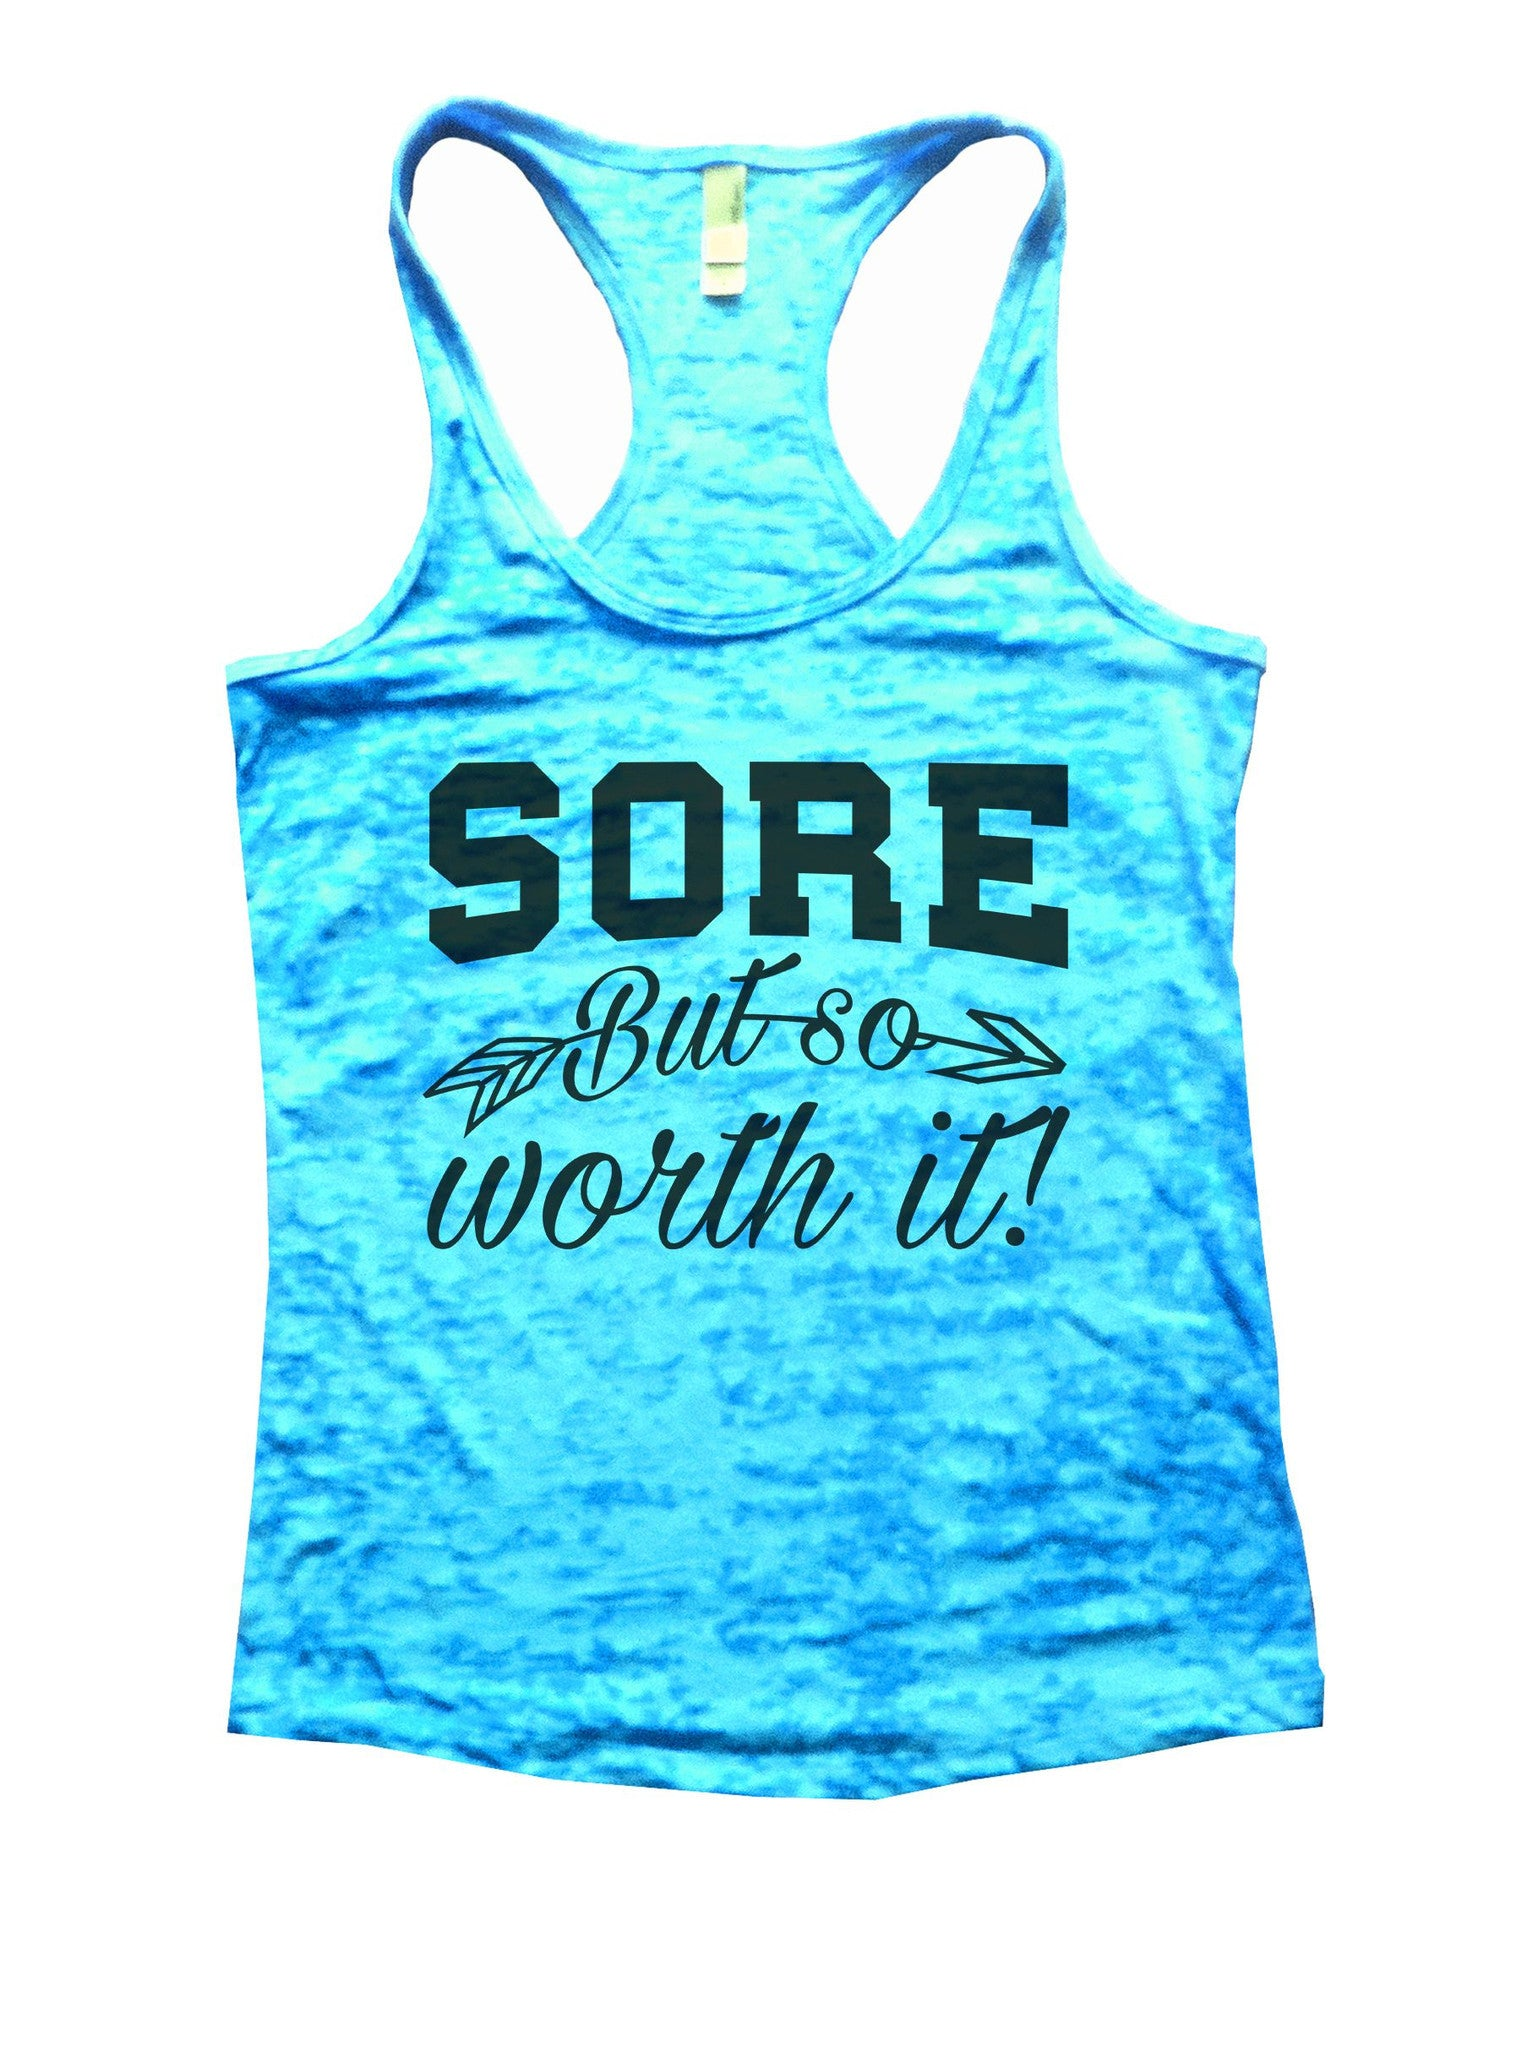 Sore But So Worth It! Burnout Tank Top By BurnoutTankTops.com - 1070 - Funny Shirts Tank Tops Burnouts and Triblends  - 4